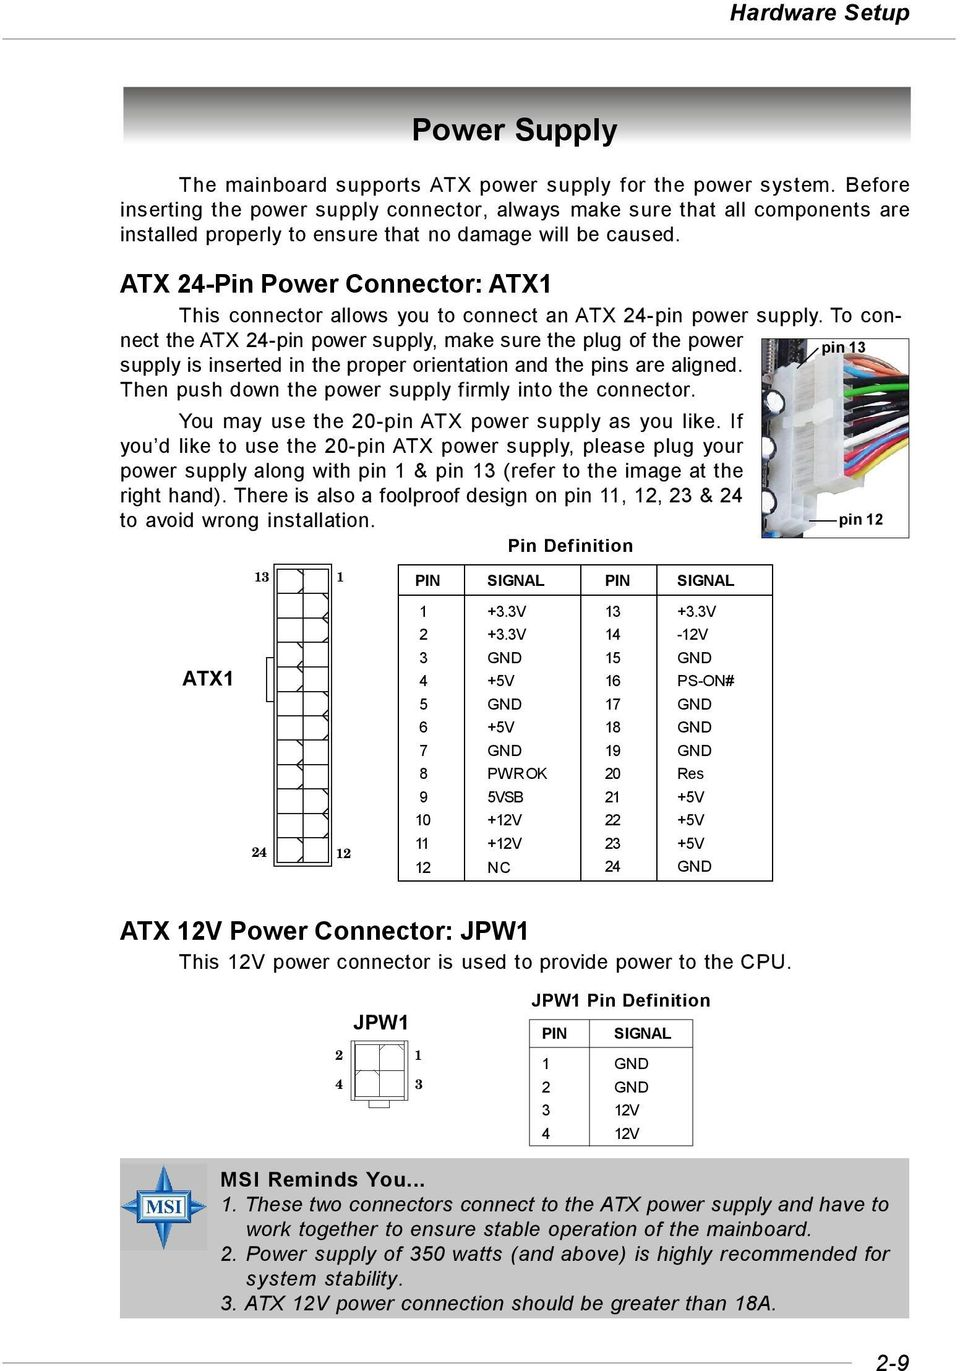 Ms 7184 V1x Micro Atx Mainboard Pdf Mini 24 Pin Wiring Diagram Power Connector Atx1 This Allows You To Connect An